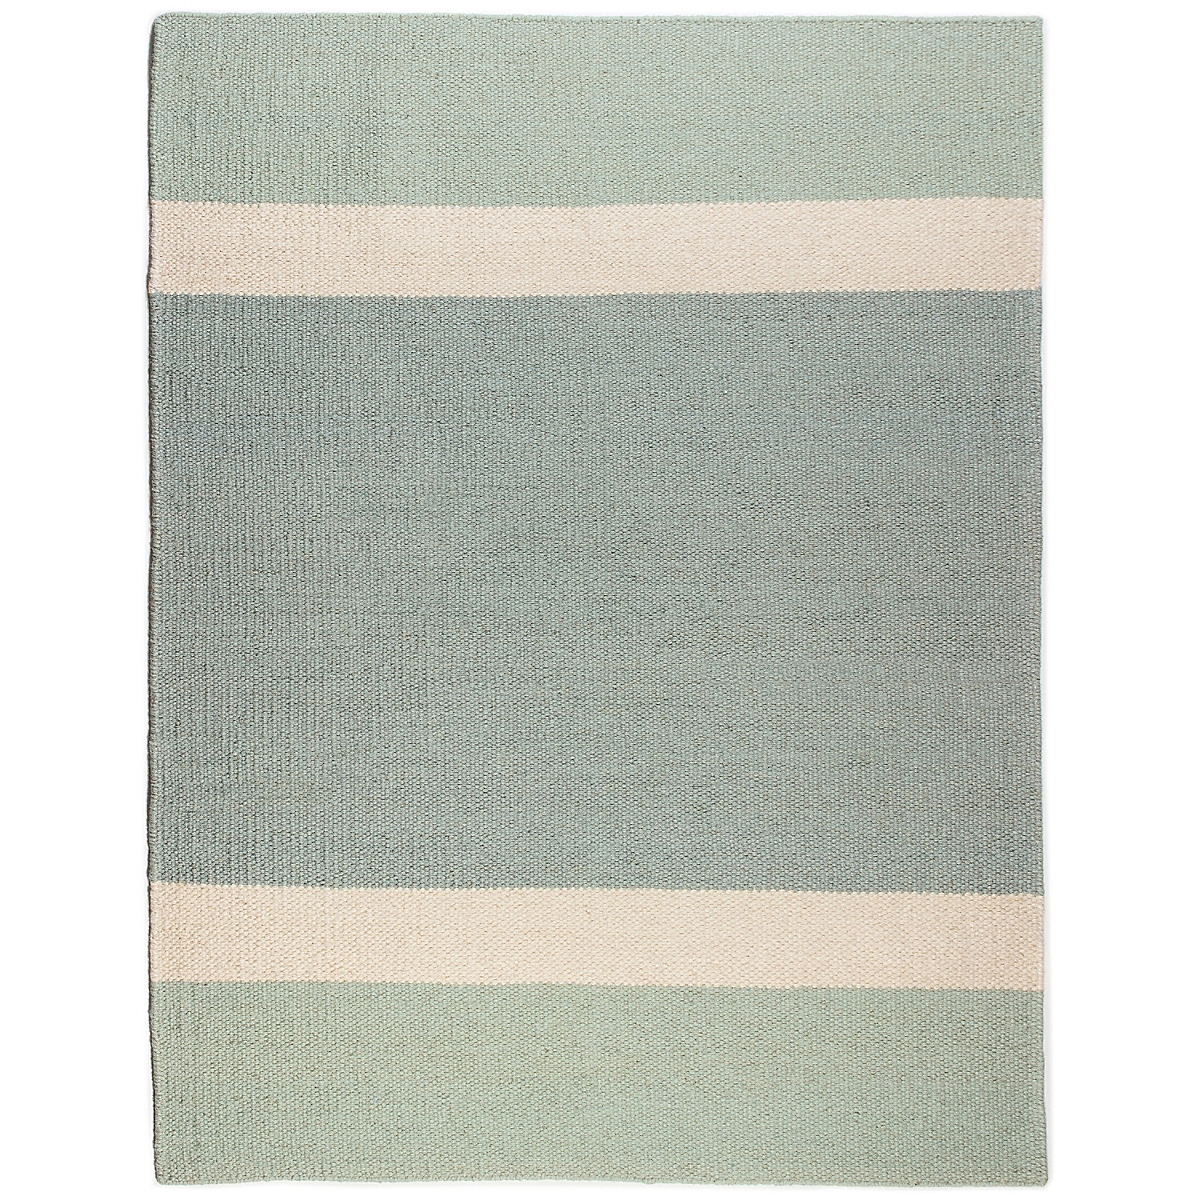 Marshall Point Wool Berber Striped Rug